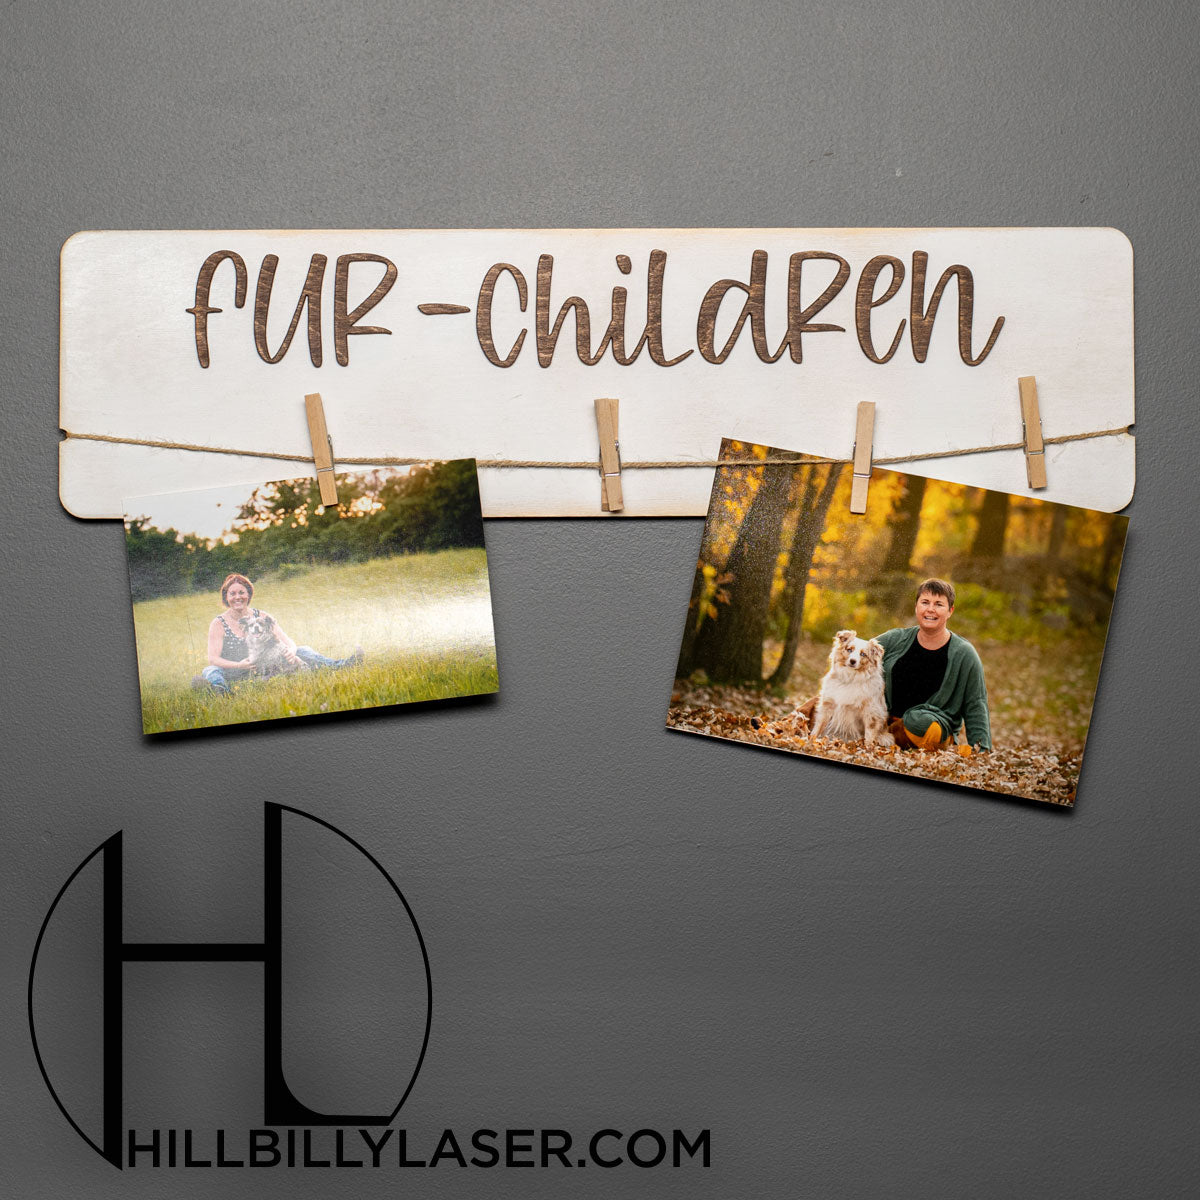 Fur-Children Photo Hanger - Hillbilly Laser